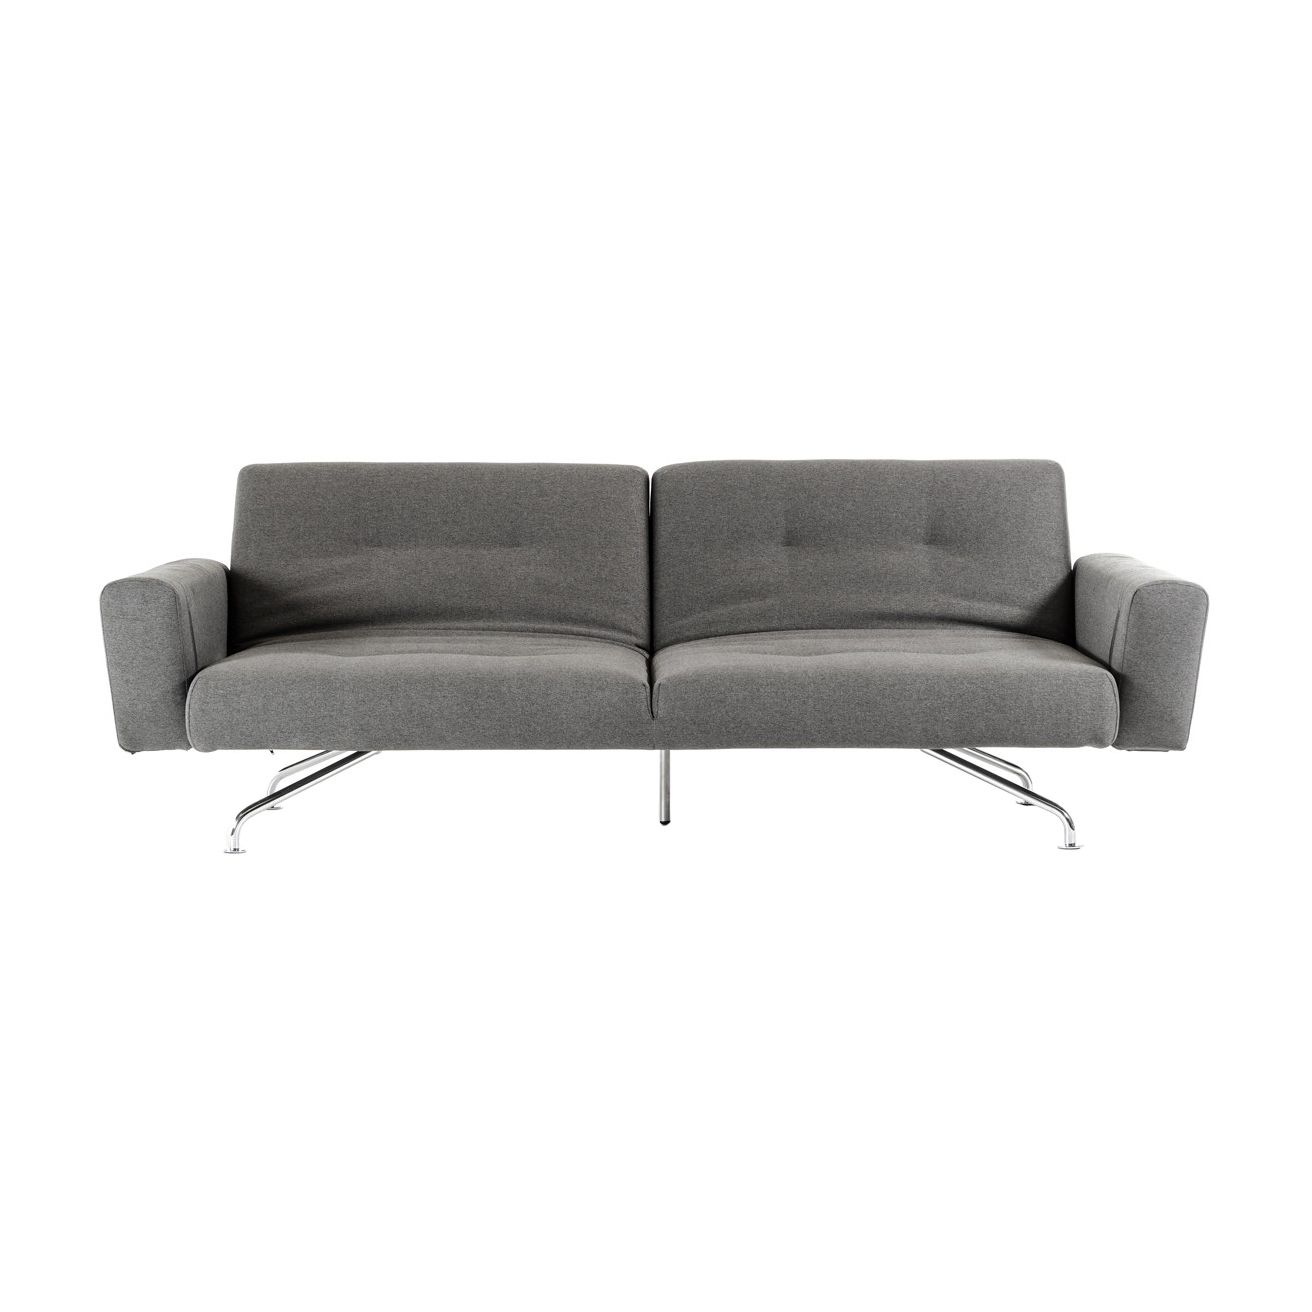 Aidan Convertible Sofa | Convertible Furniture | Pinterest | Mid Regarding Aidan Ii Sofa Chairs (View 7 of 25)